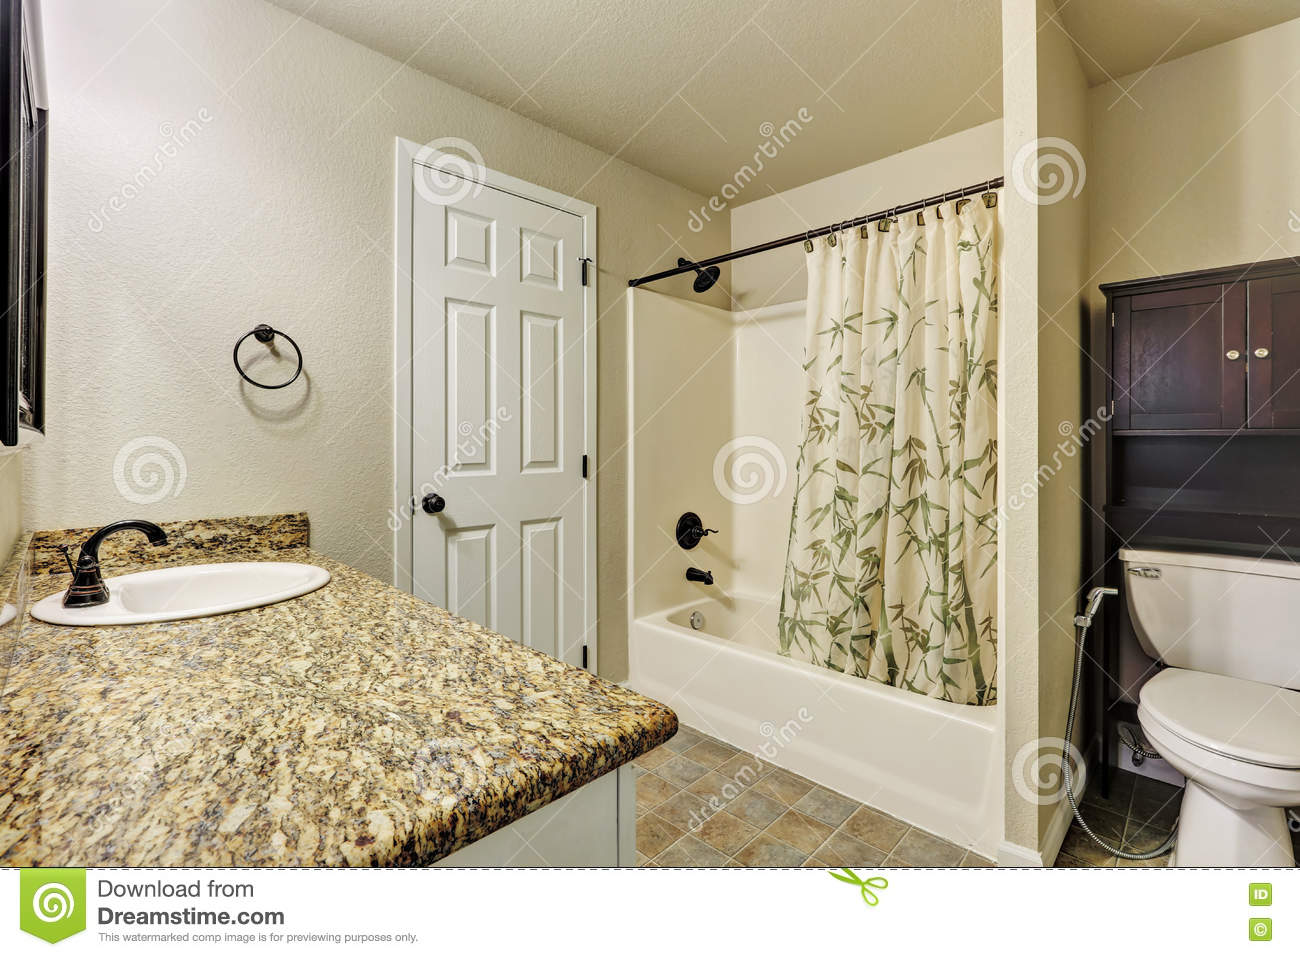 Typical american bathroom interior in small house stock for Petite salle de bain moderne